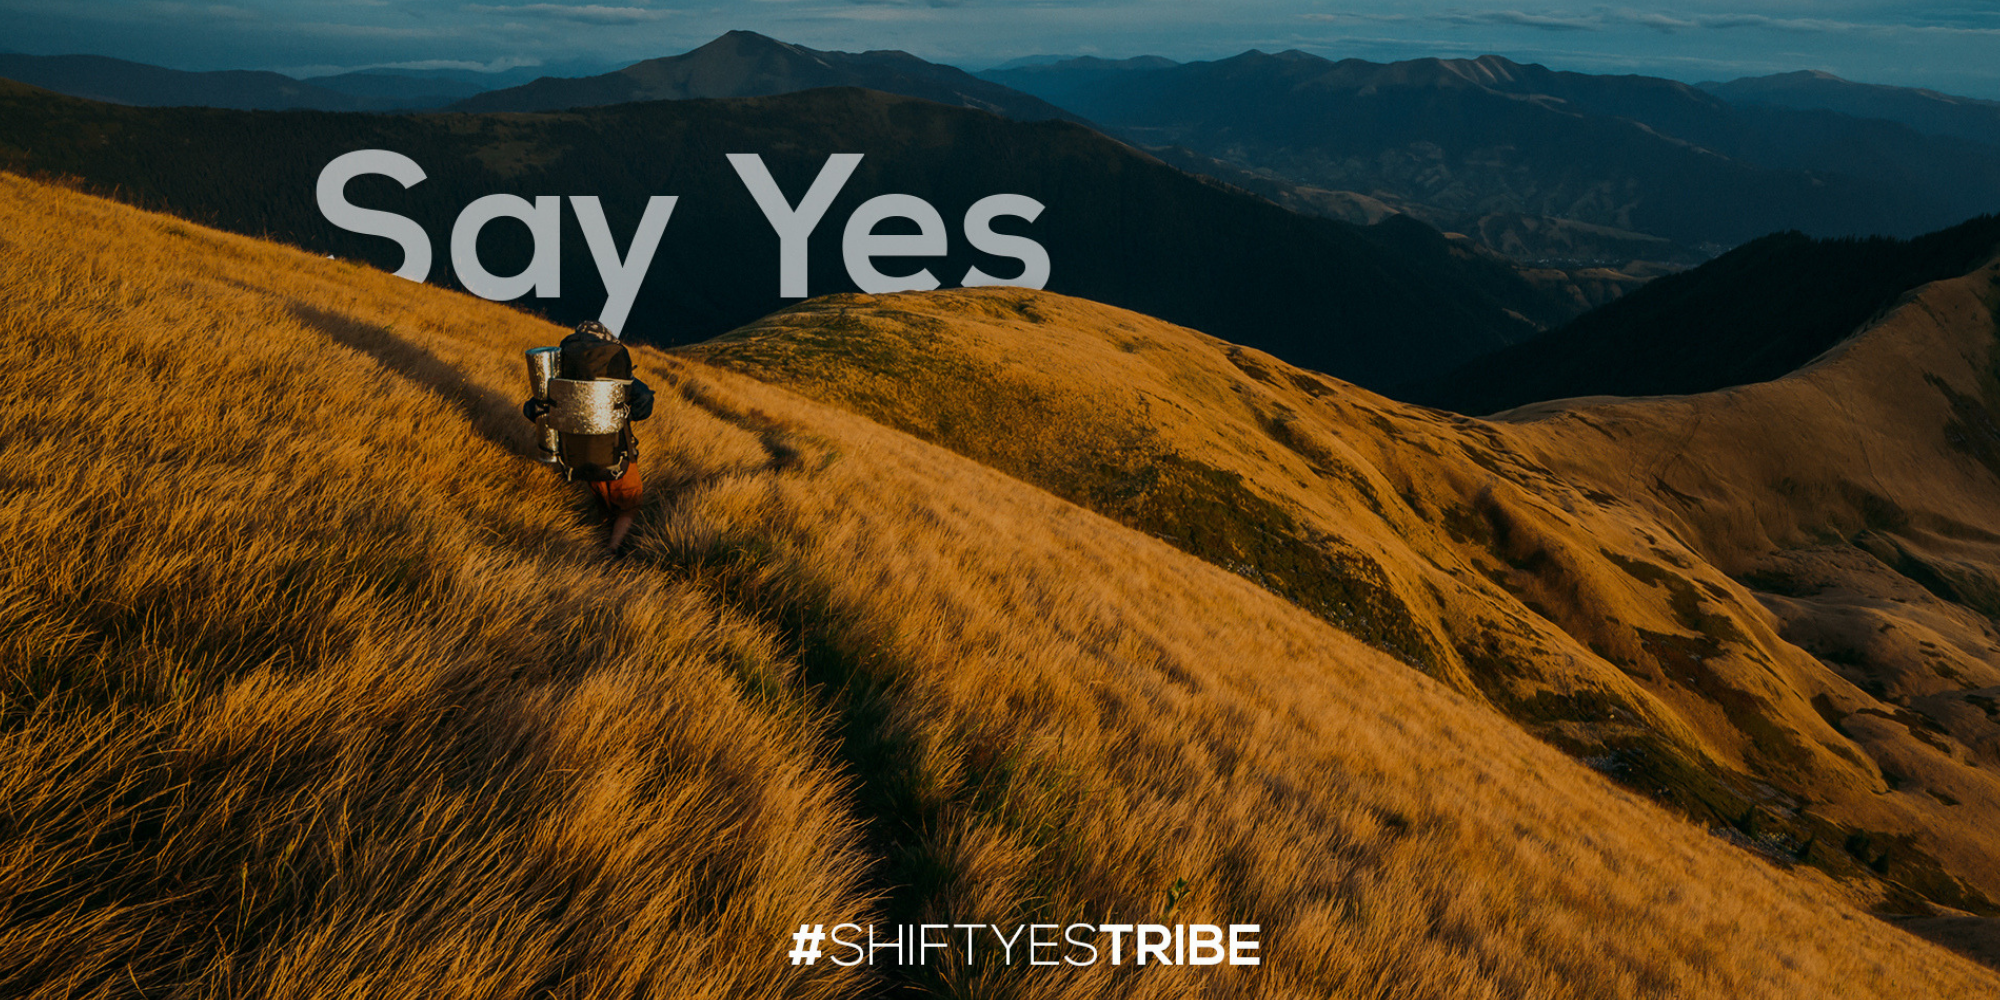 FEBRUARY '19 CONTENT - CLICK HERE for February's content around building a culture of 'Saying Yes.'